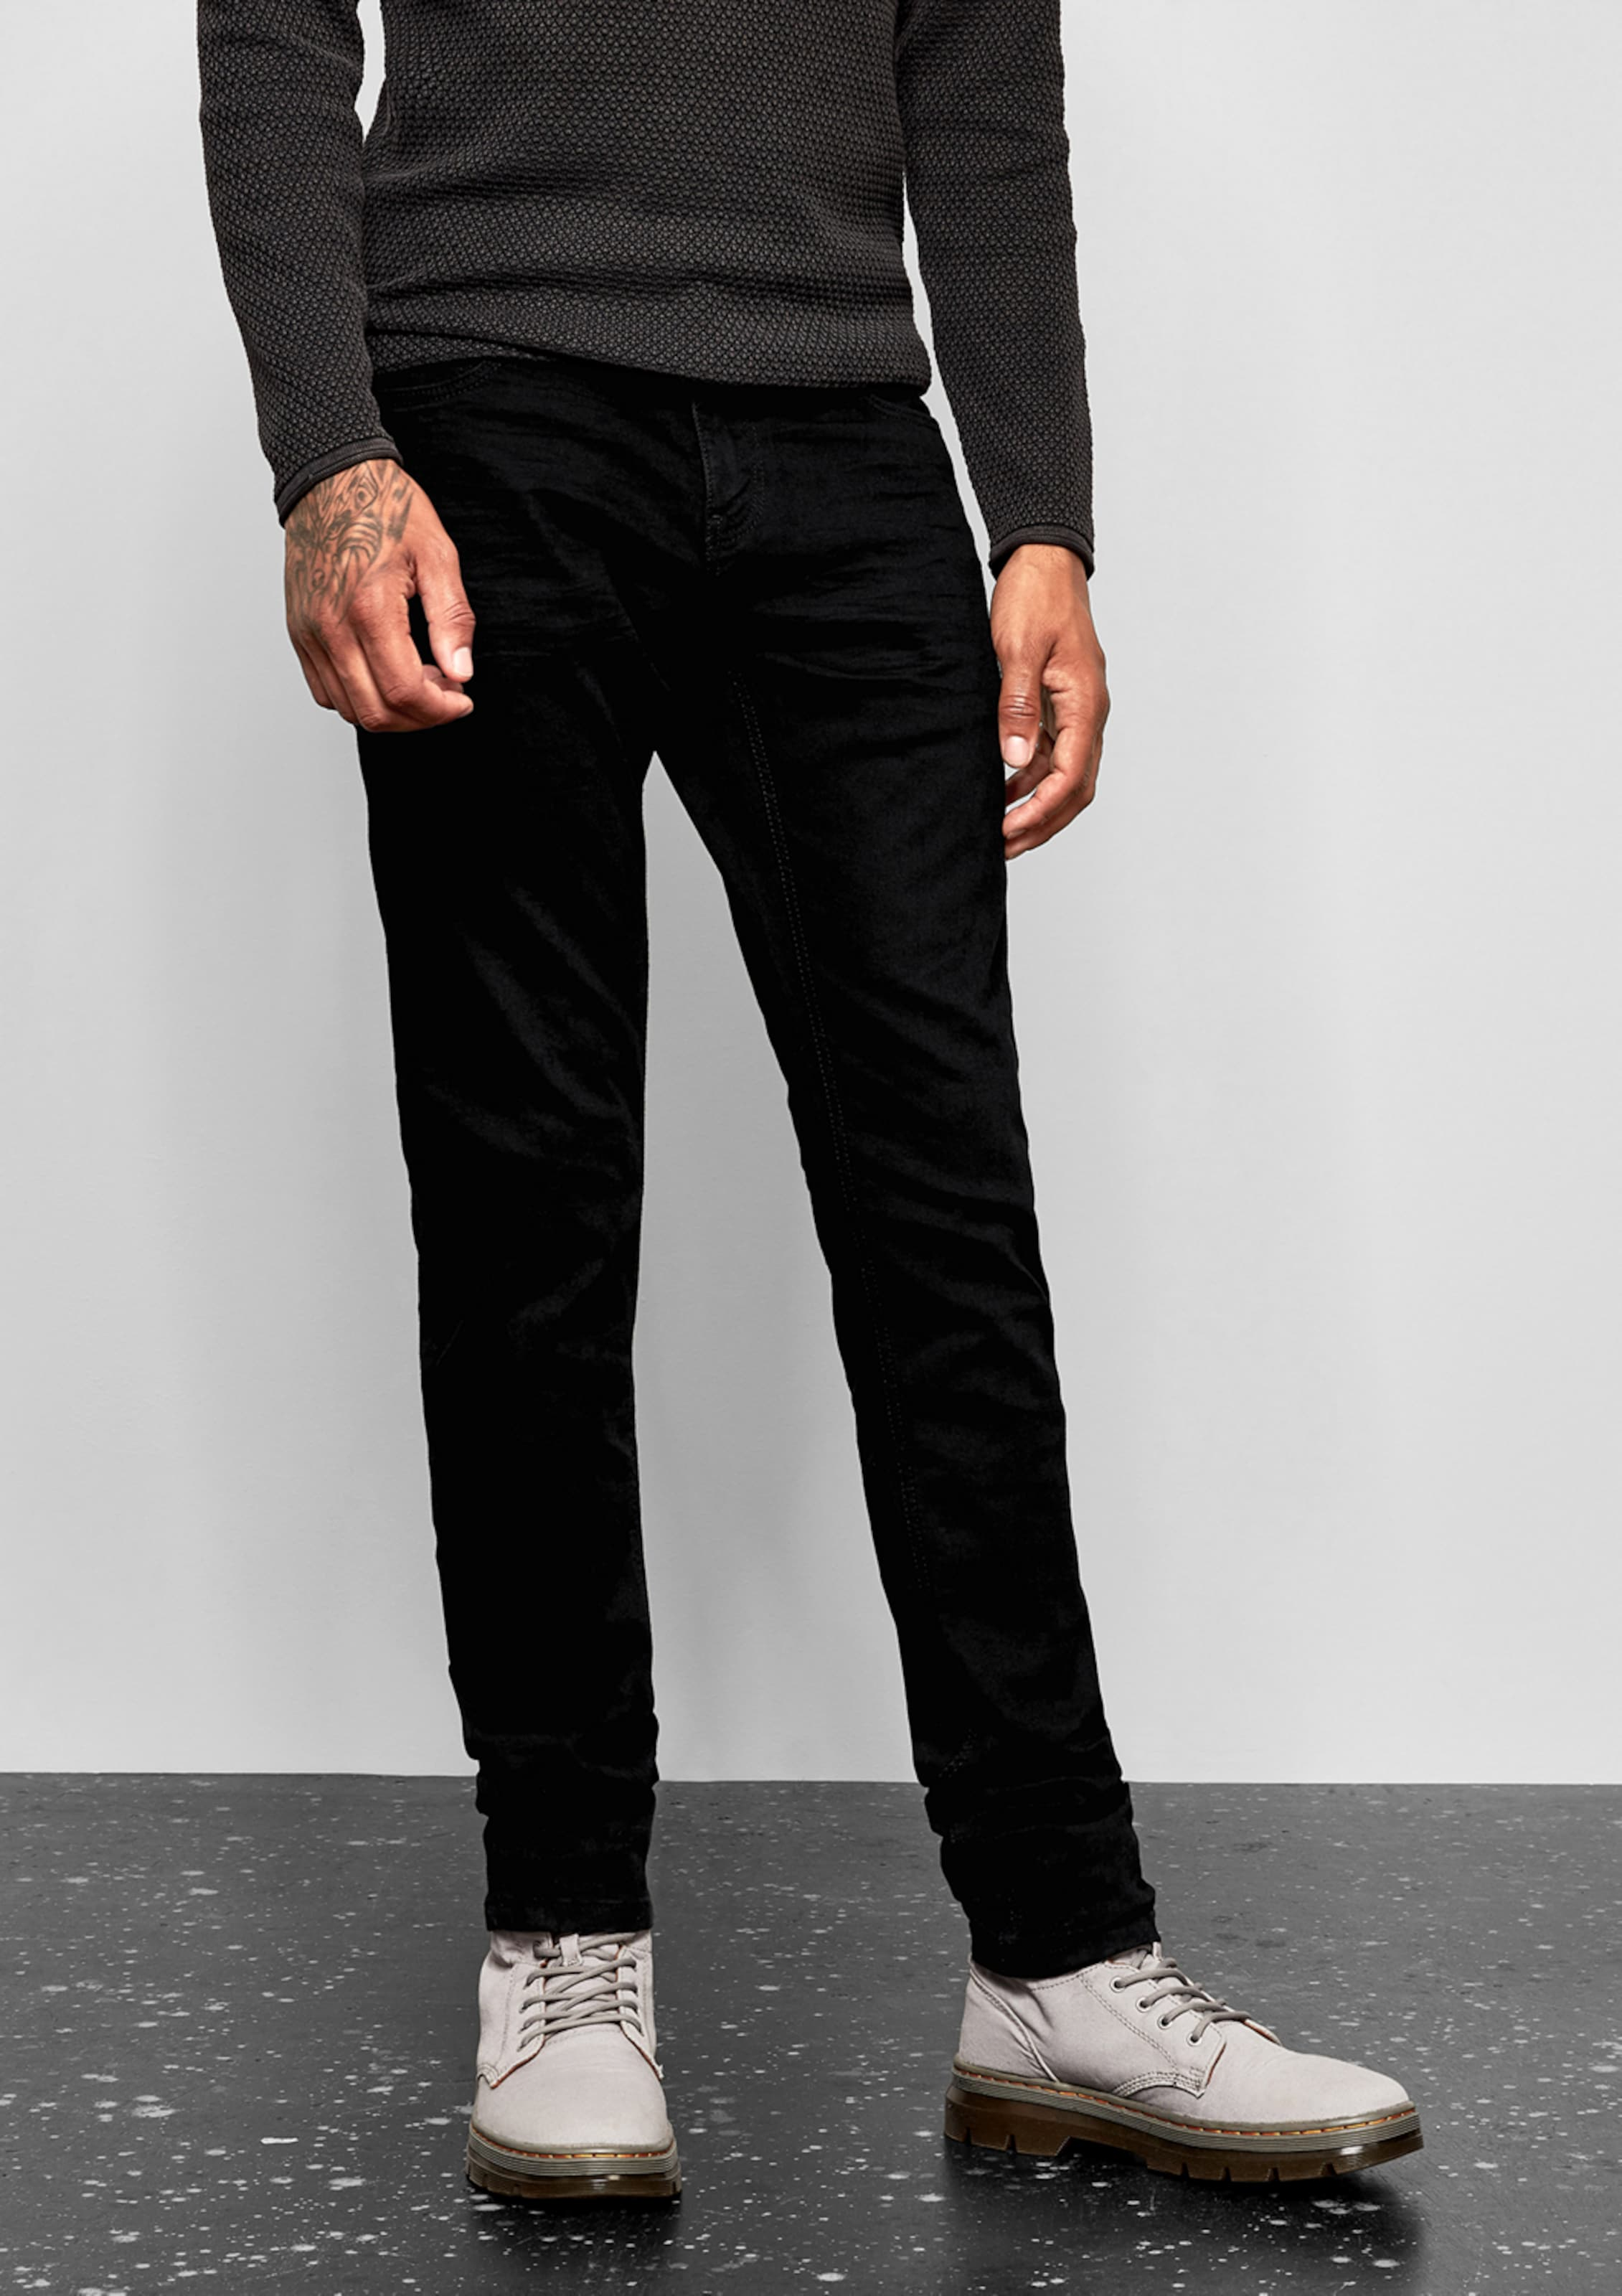 s 'gavin' Q In Designed By Schwarz Denim QdCWroBex